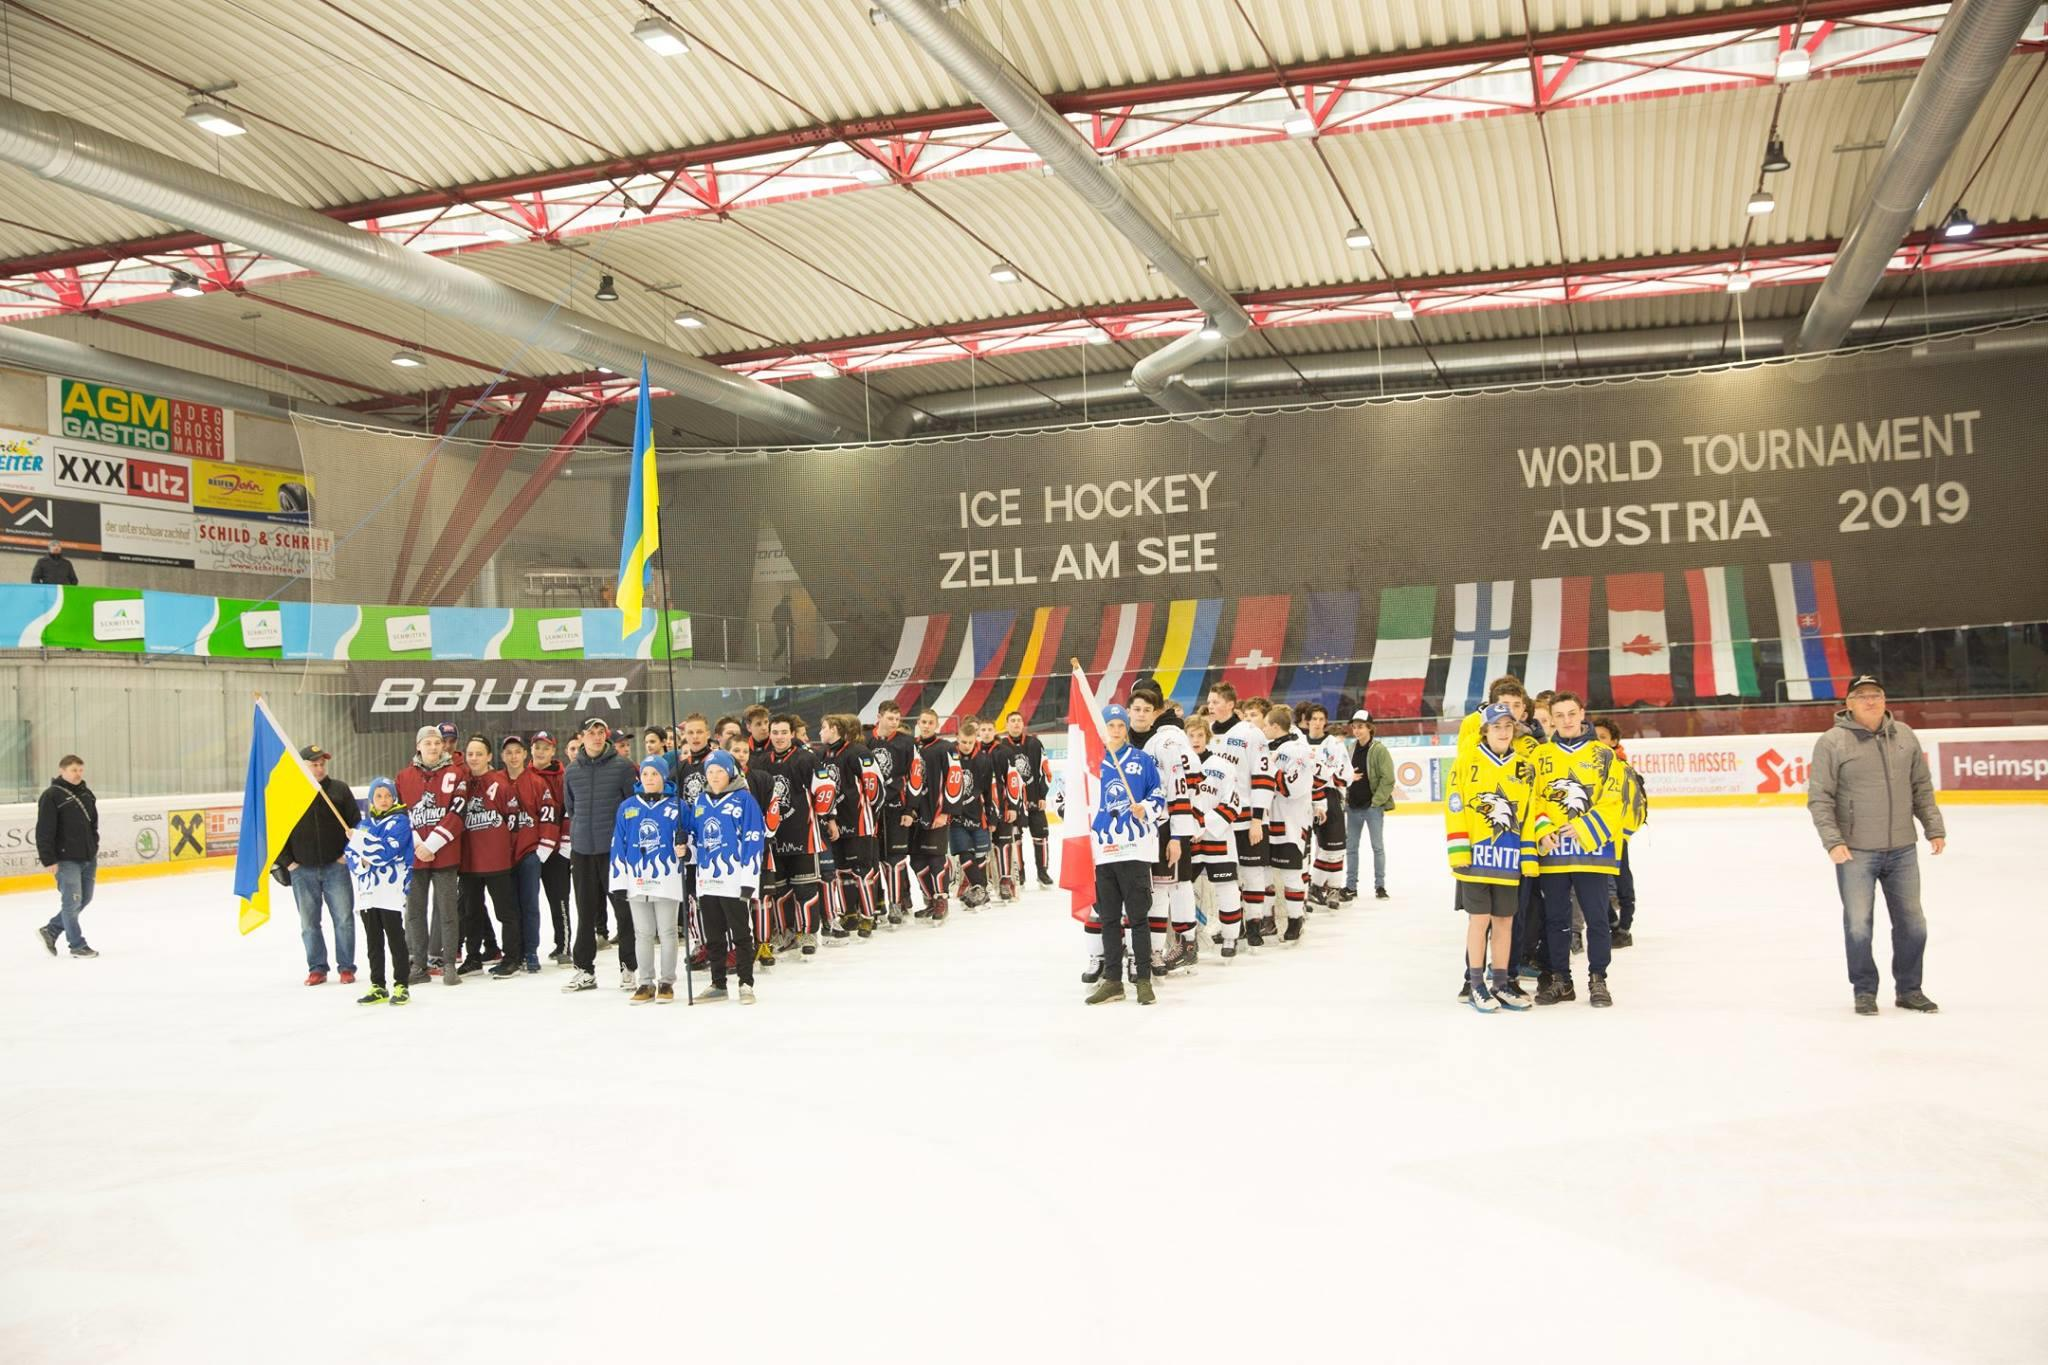 Icehockey World Tournament 2019 - 15/04/2020